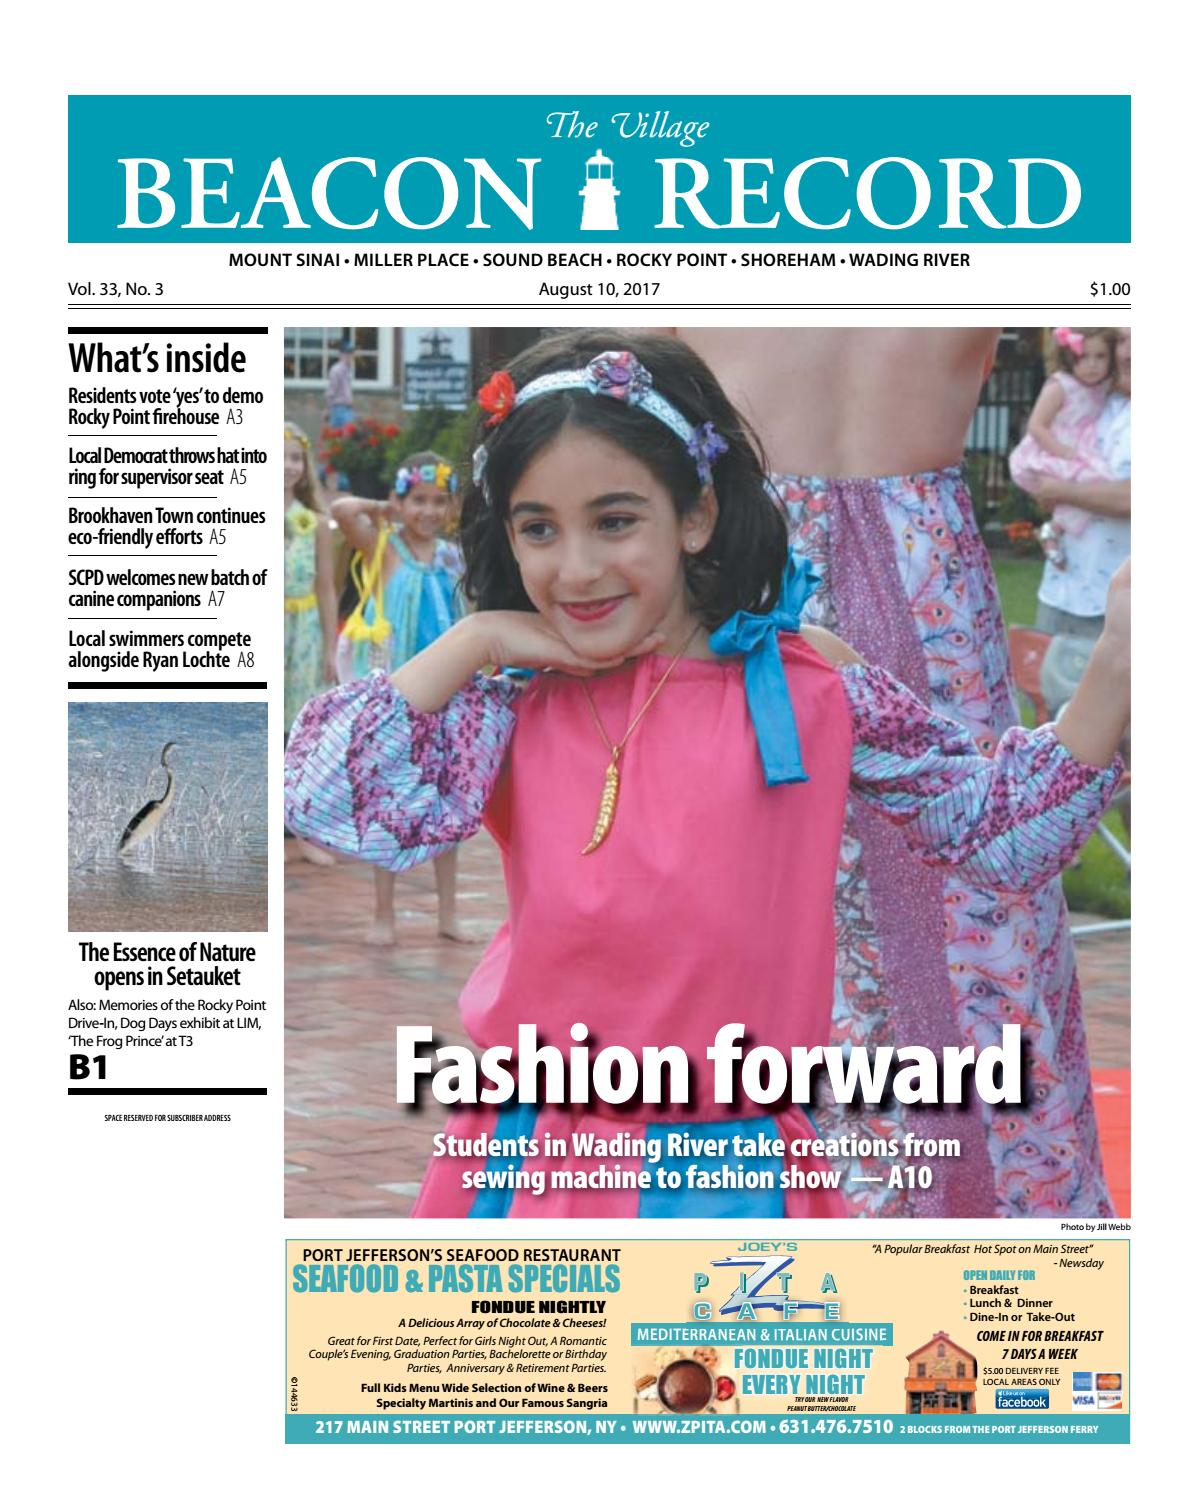 The Village Beacon Record - August 10, 2017 by TBR News Media - issuu